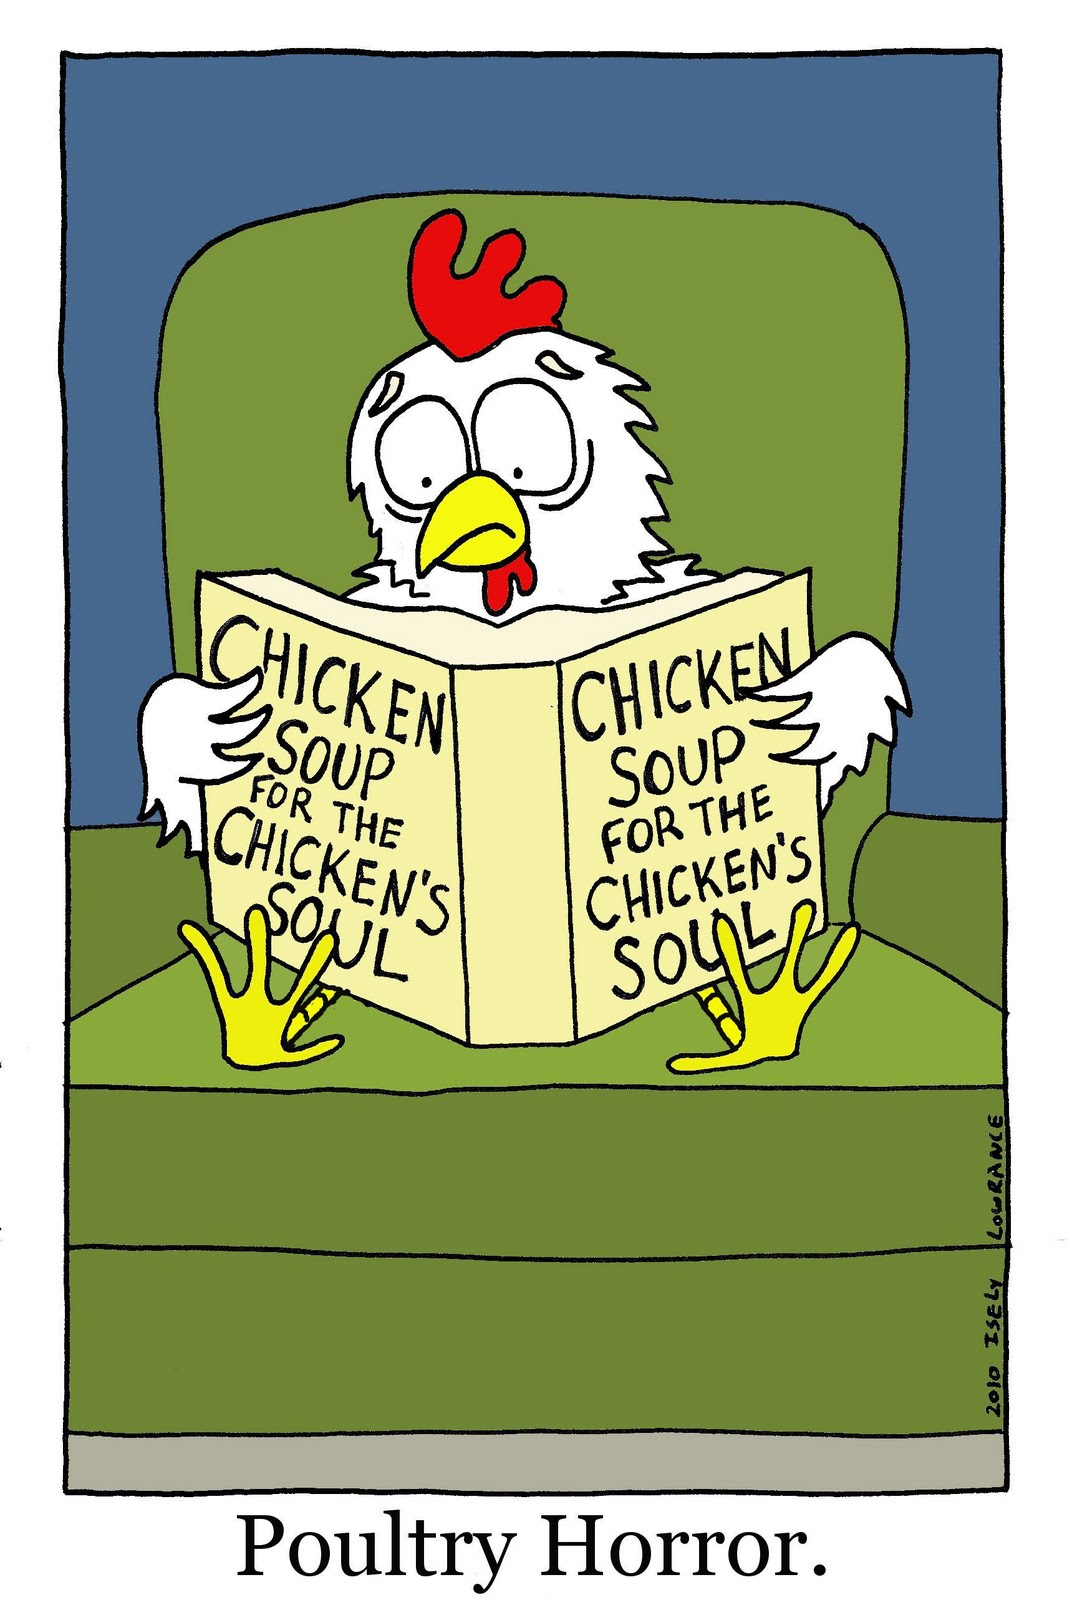 Chicken Soup clipart cartoon Soul for the 2010 chicken's